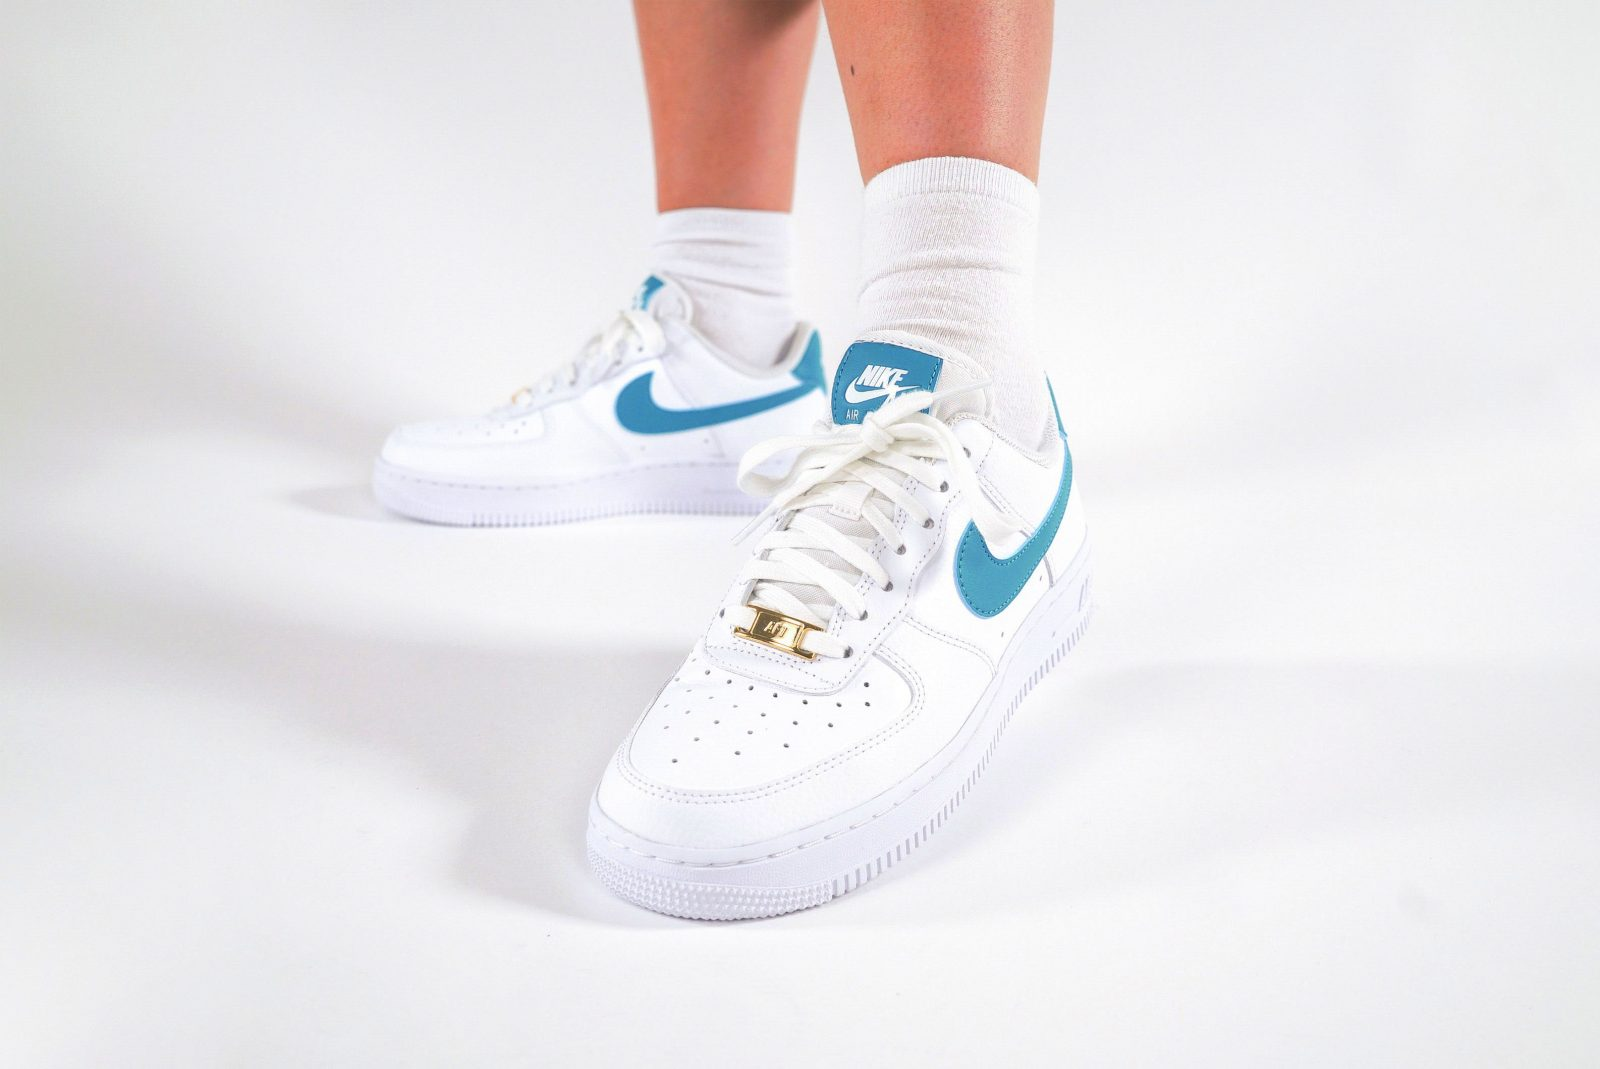 Nike Air Force 1 Teal Nebula The Sole Womens laces